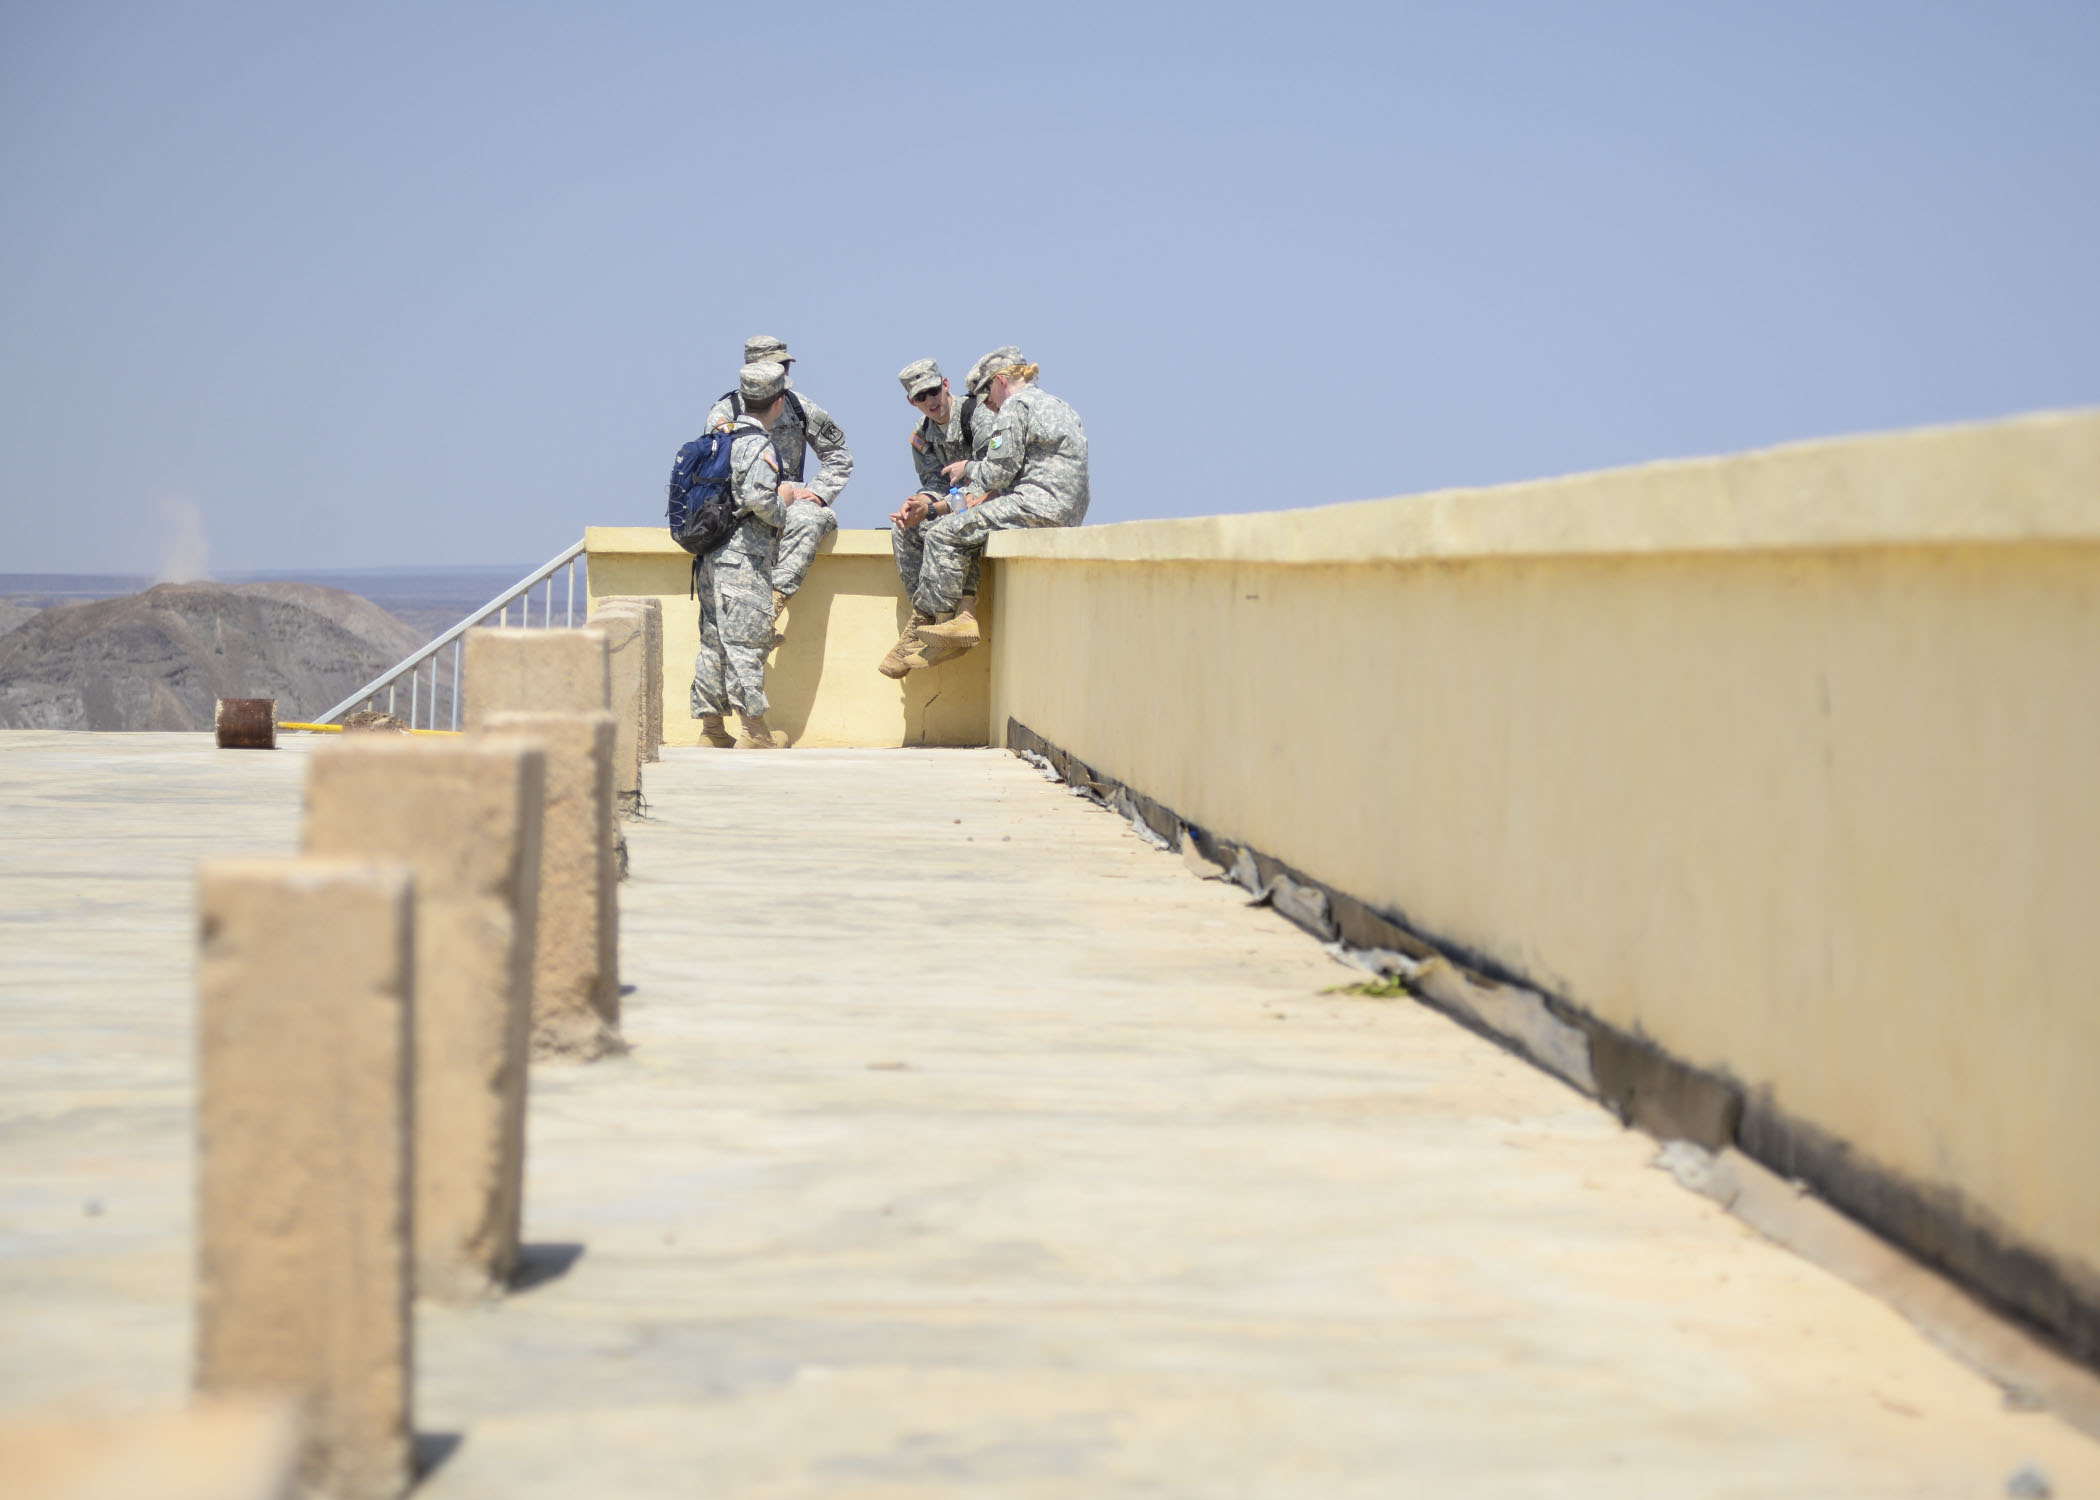 A group of U.S. Army Reserve Officer Training Corps cadets talks during a break at the Djiboutian Army Academy in Arta, Djibouti, July 25, 2016. The cadets are spending three weeks with the Djiboutian Army in a culture exchange program, where they are learning each other's language and methods of military operations. (U.S. Air Force photo by Staff Sgt. Benjamin Raughton/Released)